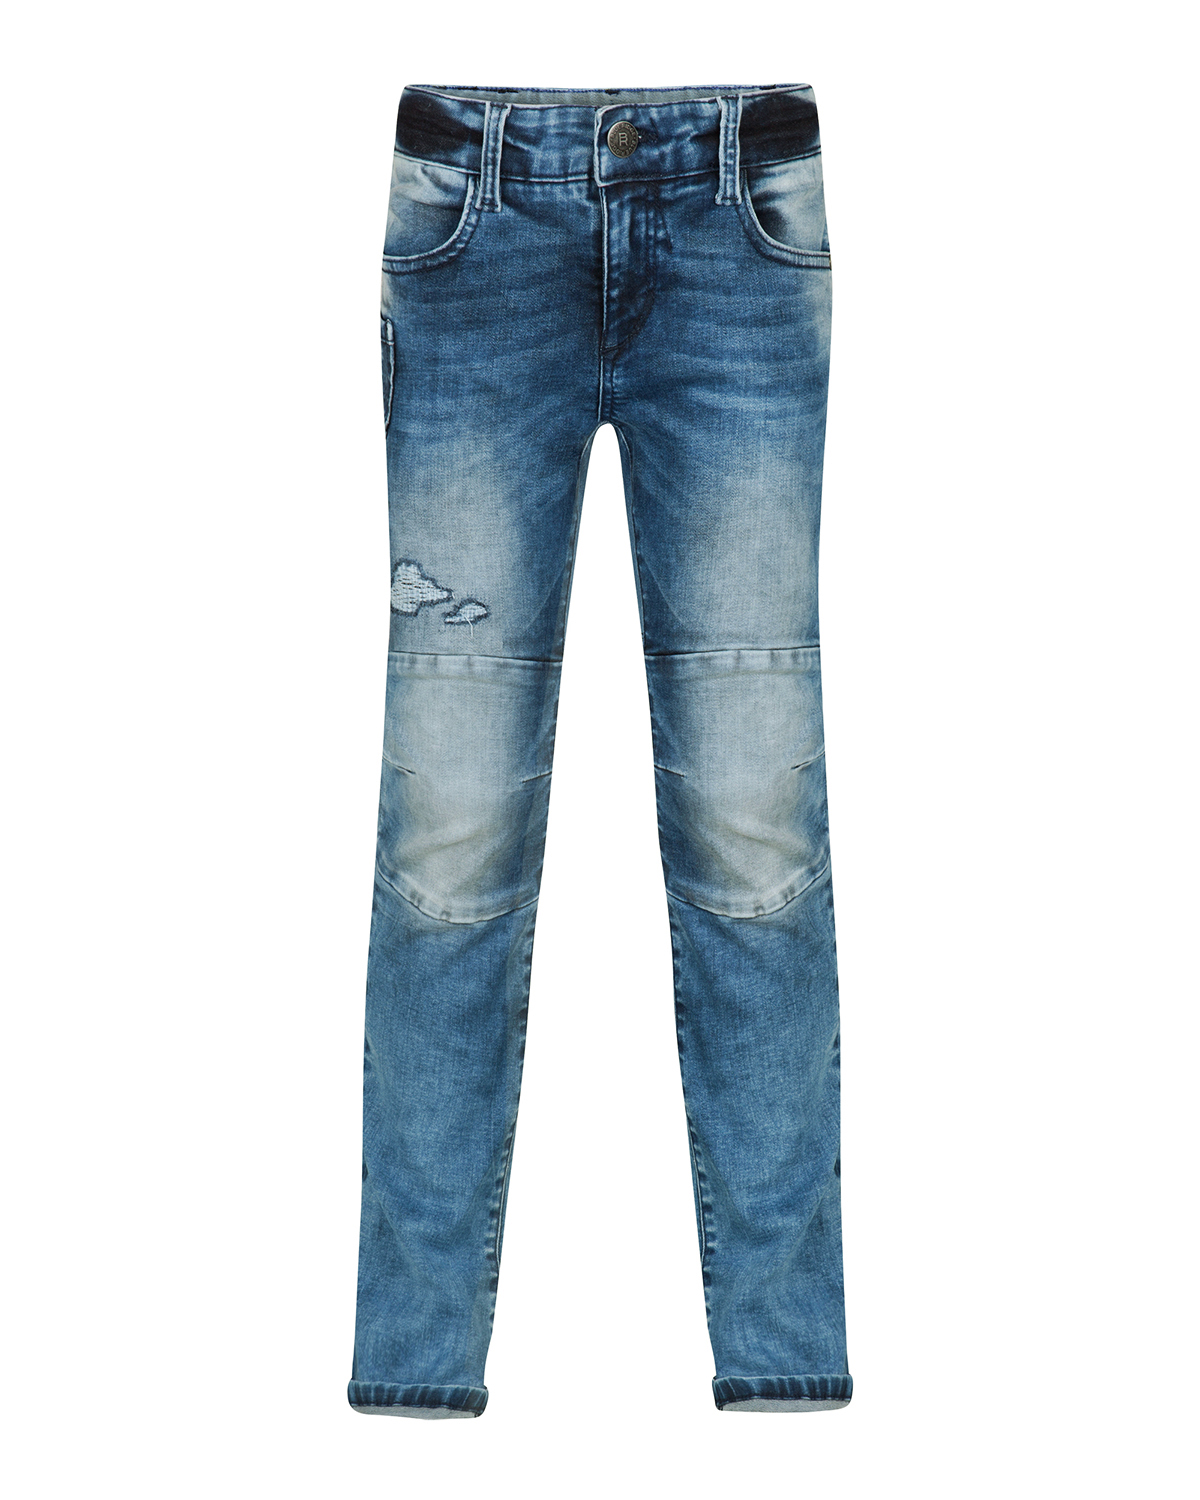 Jongens skinny fit power stretch jeans